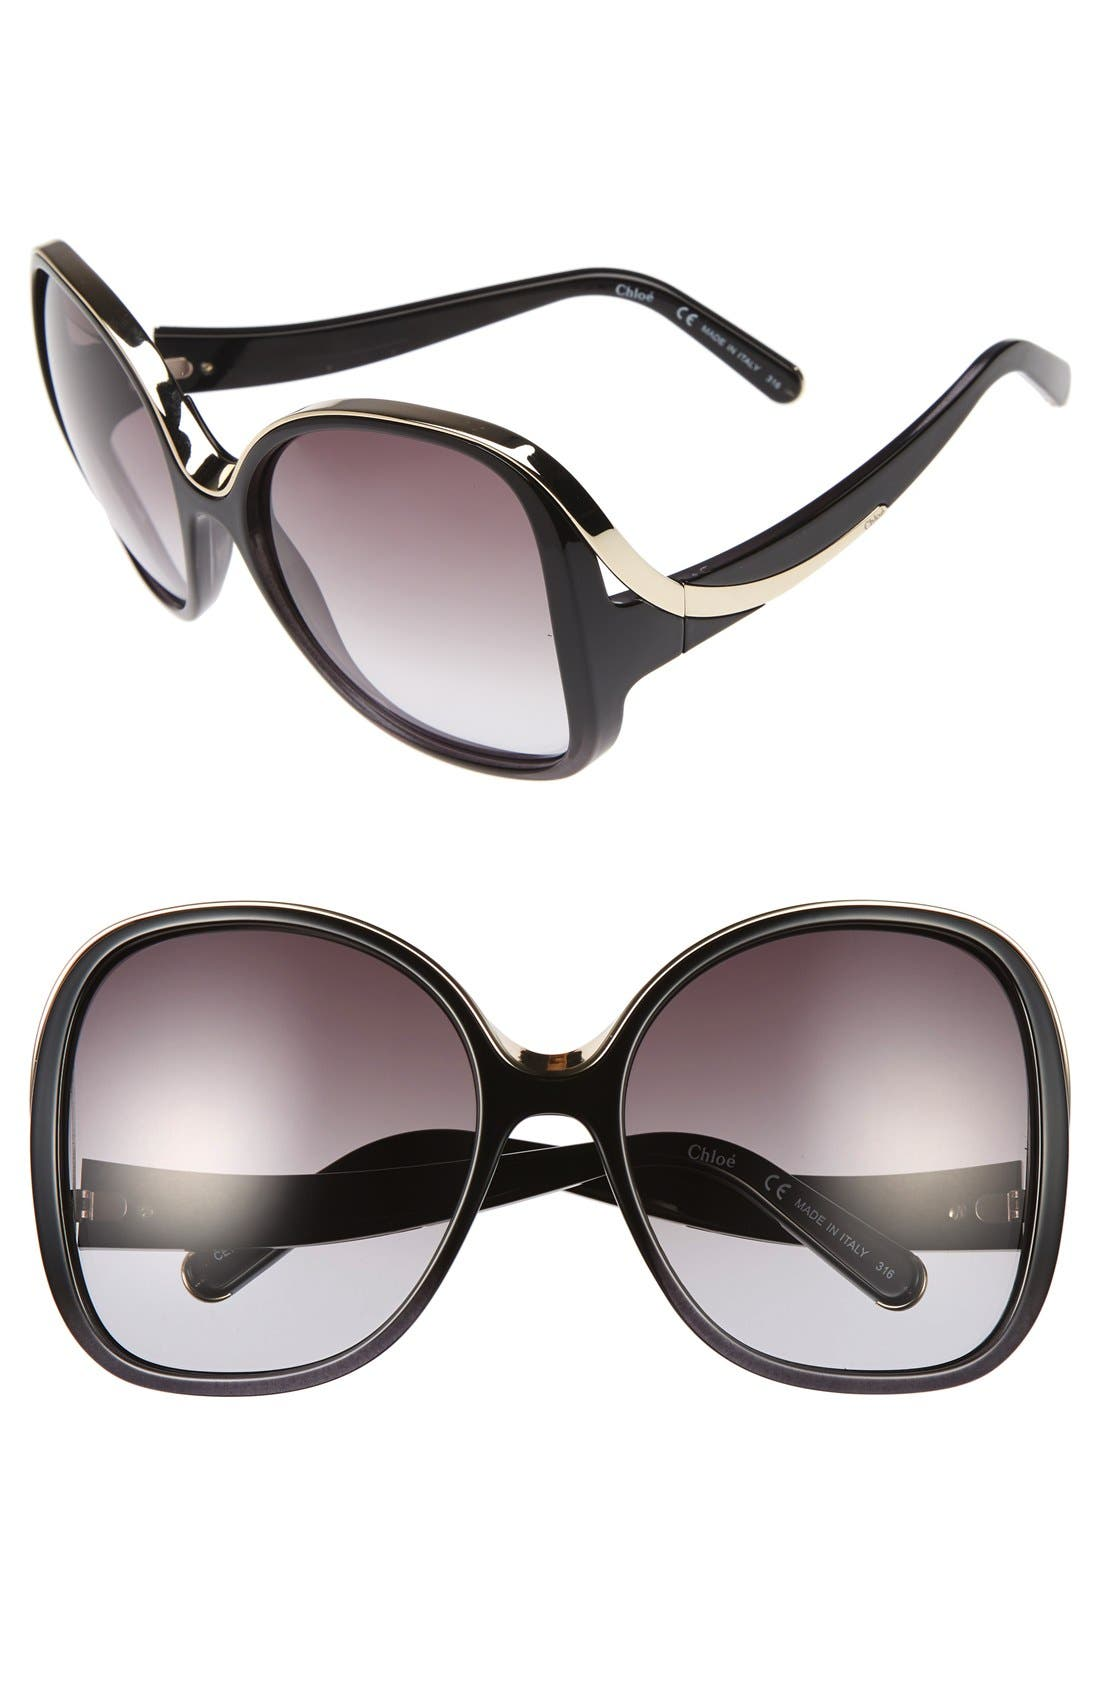 Chloé Mandy 59mm Square Sunglasses